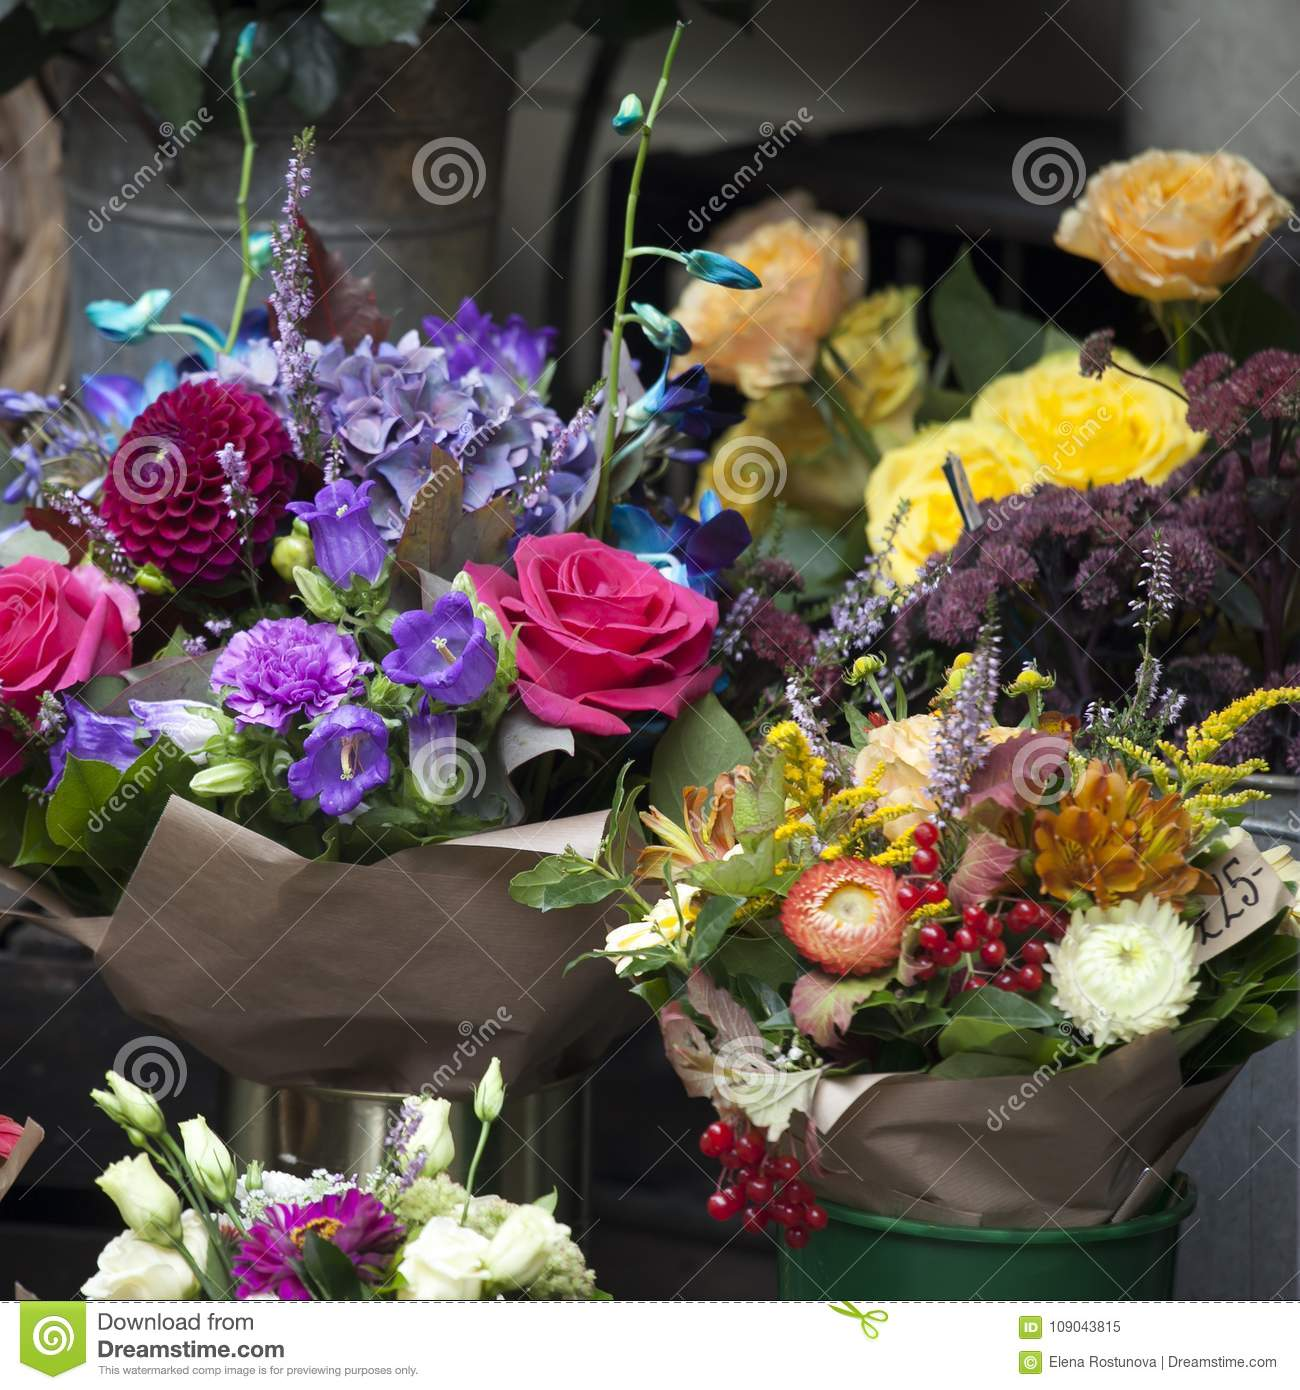 The various flowers for bouquets for sale stock image image of download the various flowers for bouquets for sale stock image image of dahlia flower izmirmasajfo